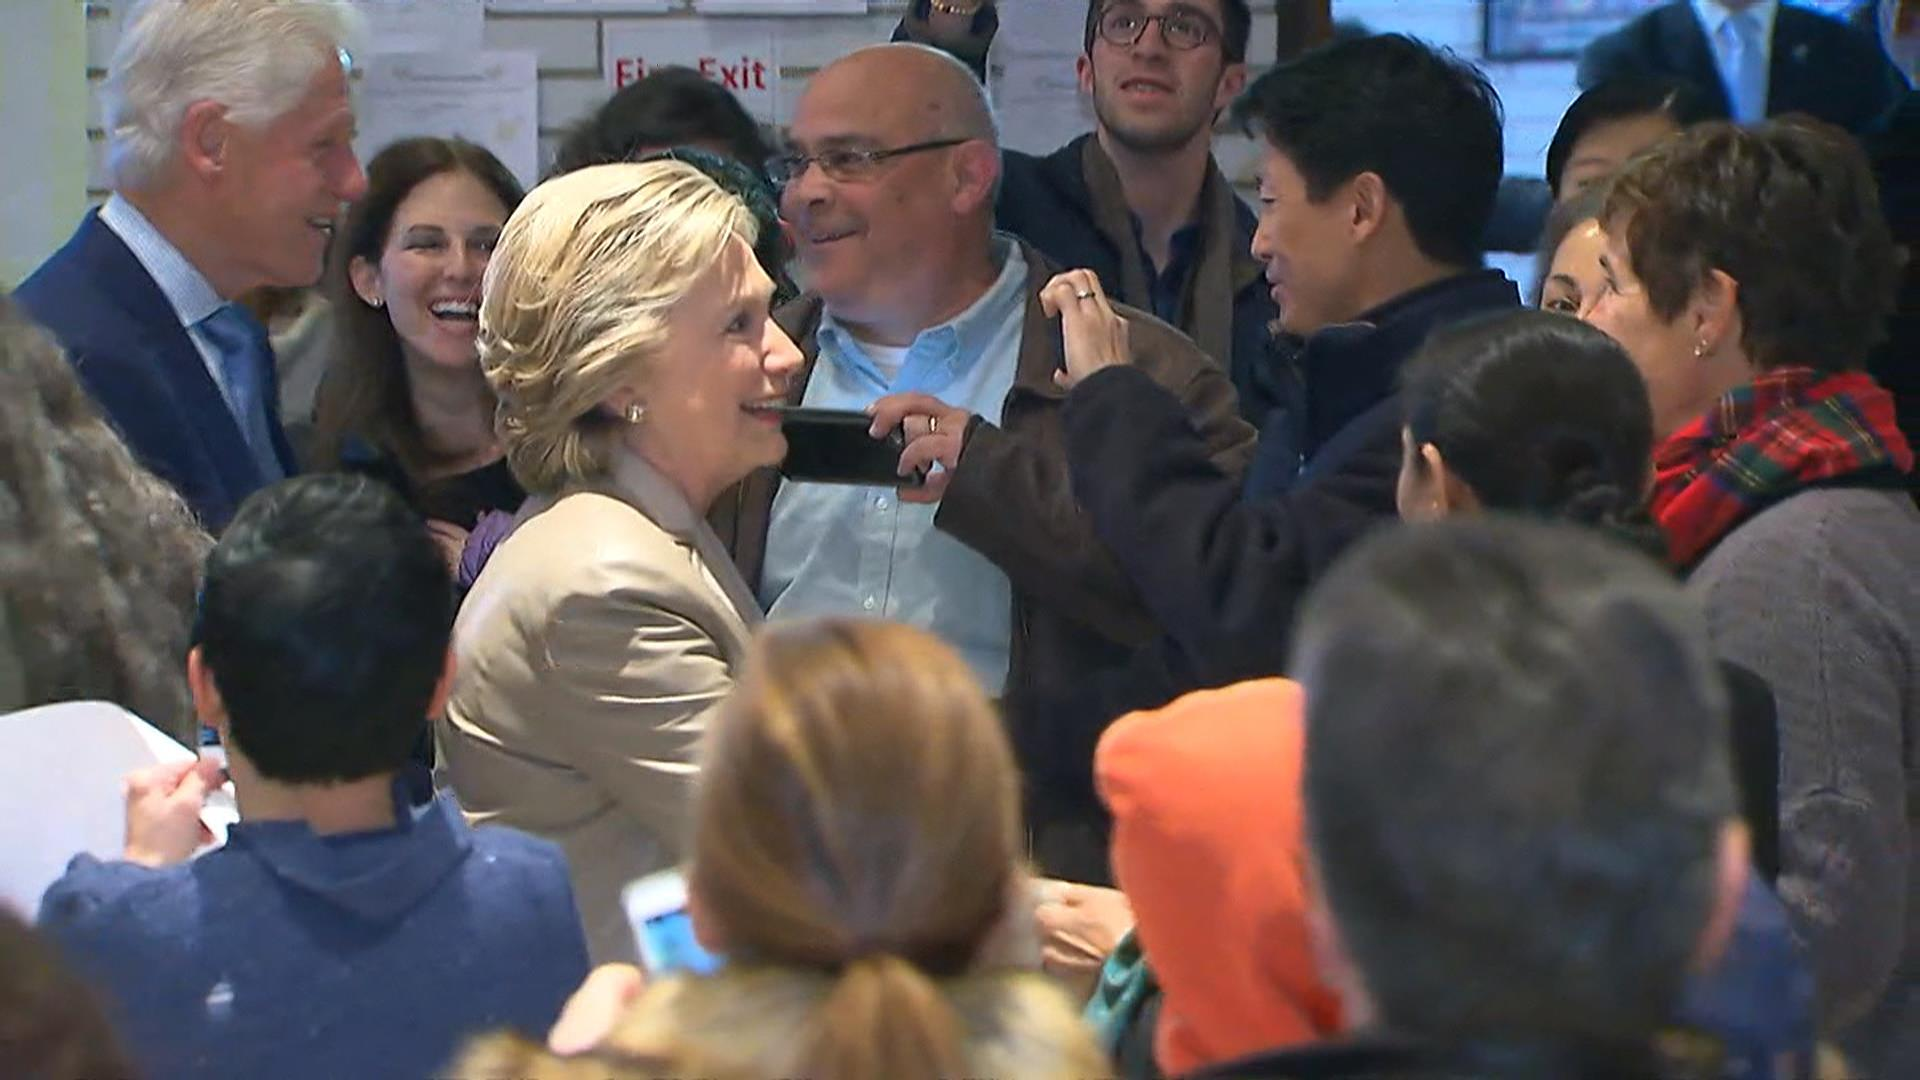 Watch Hillary Clinton Arrive To Cast Her Vote In Chappaqua